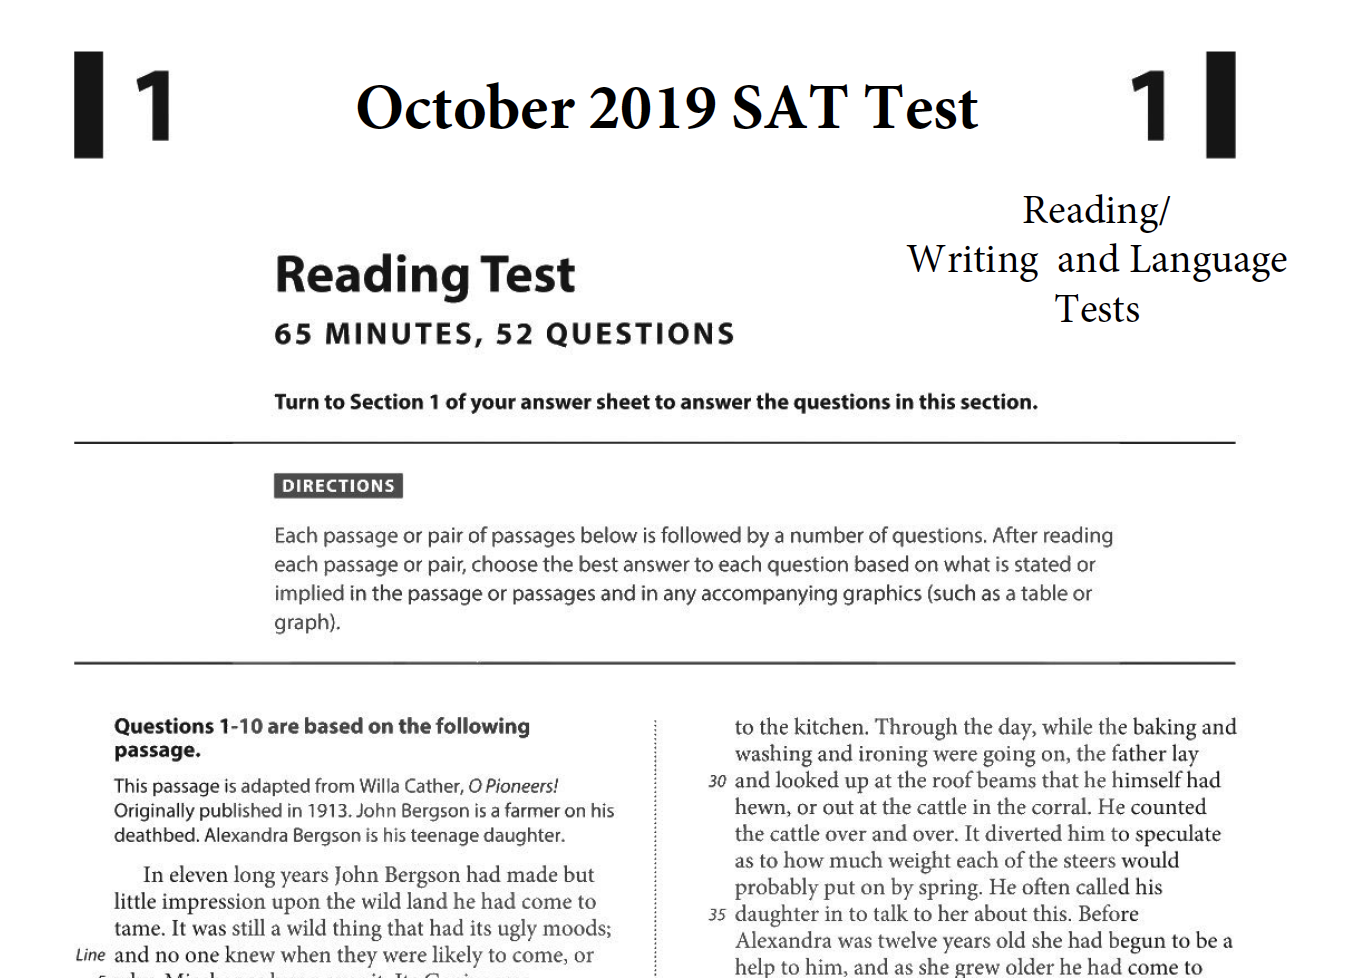 October 2019 SAT test - Reading - Writing and Language Version